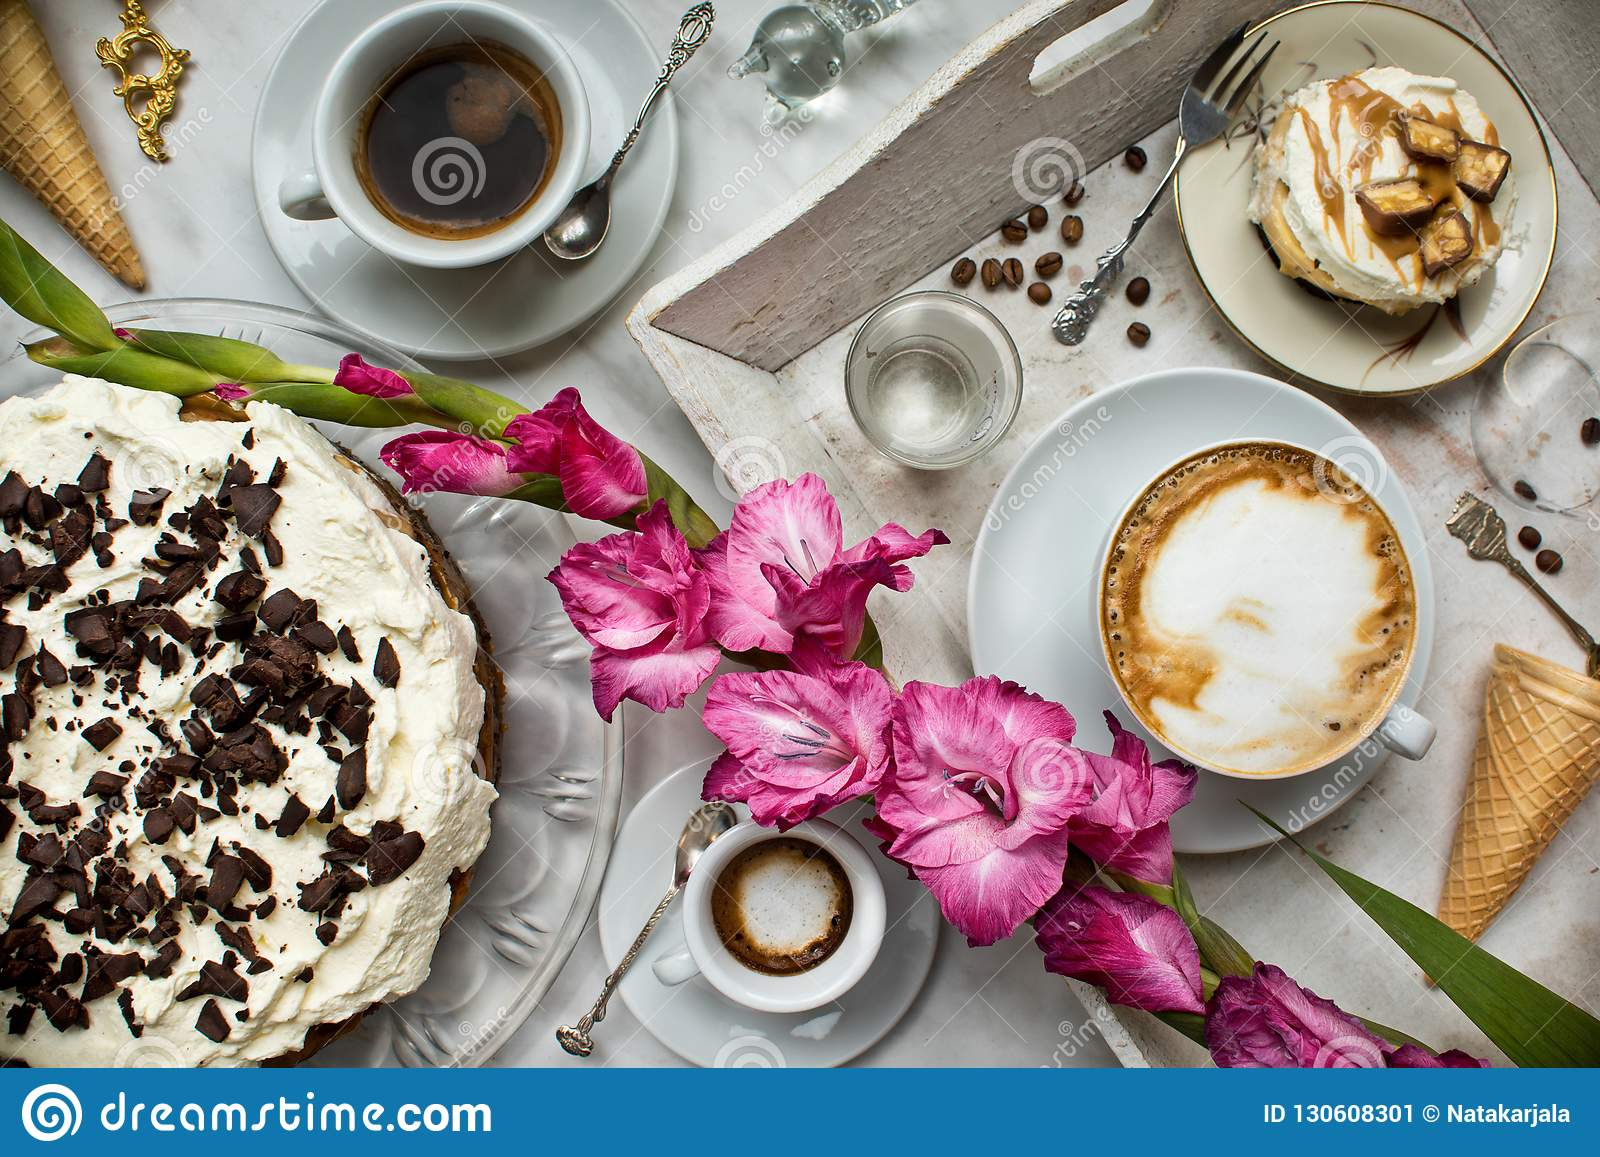 Table with loads of coffee, cakes, cupcakes, desserts, fruits, flowers and croissants. Ancient spoons and a tray,